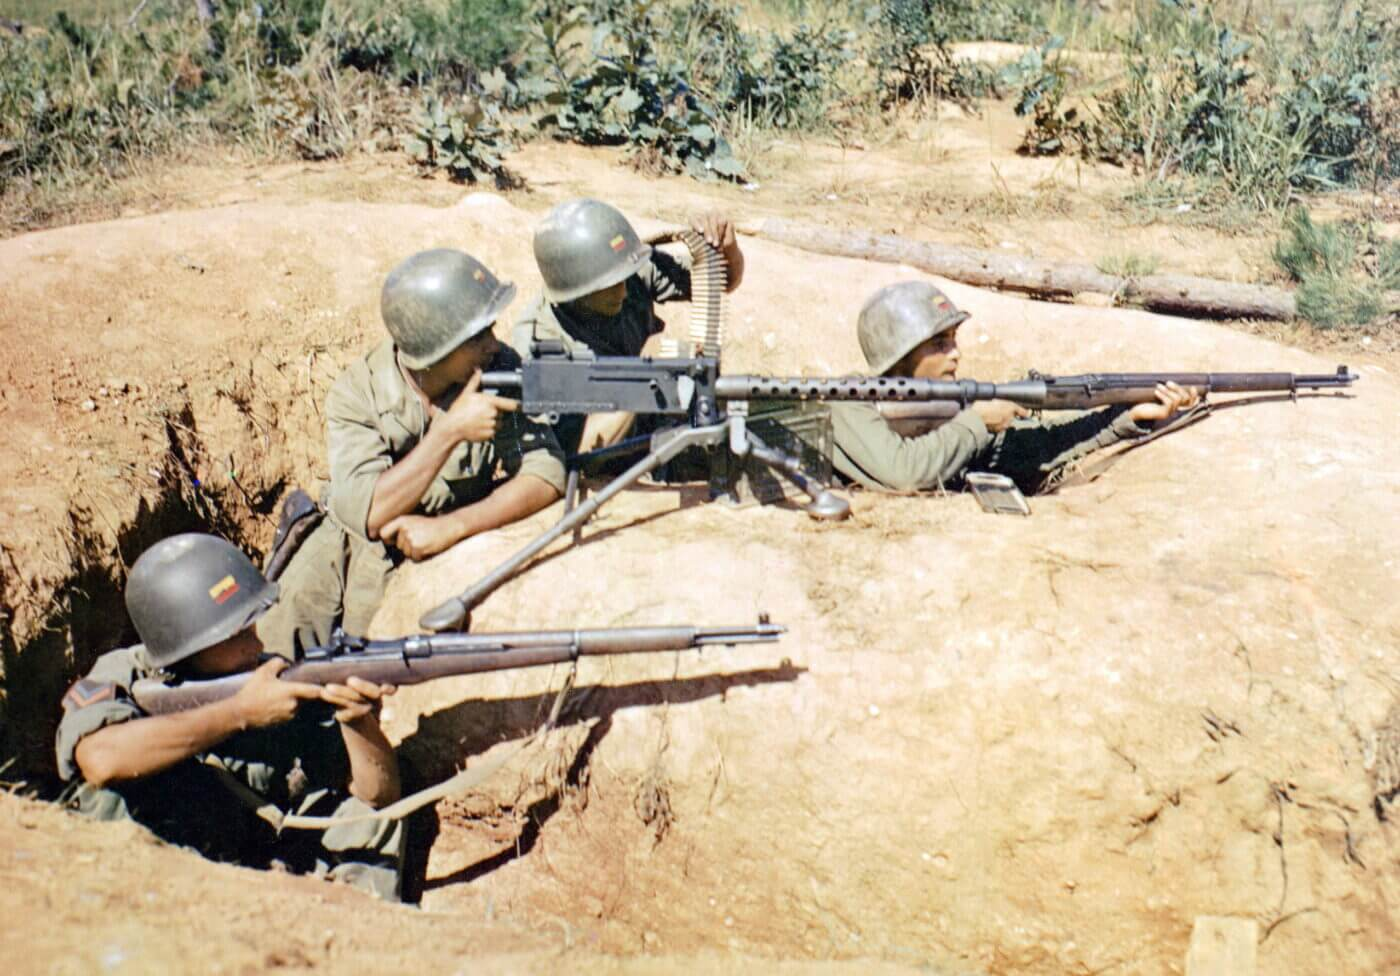 Columbian troops in the Korean War with the M1 Garand rifle